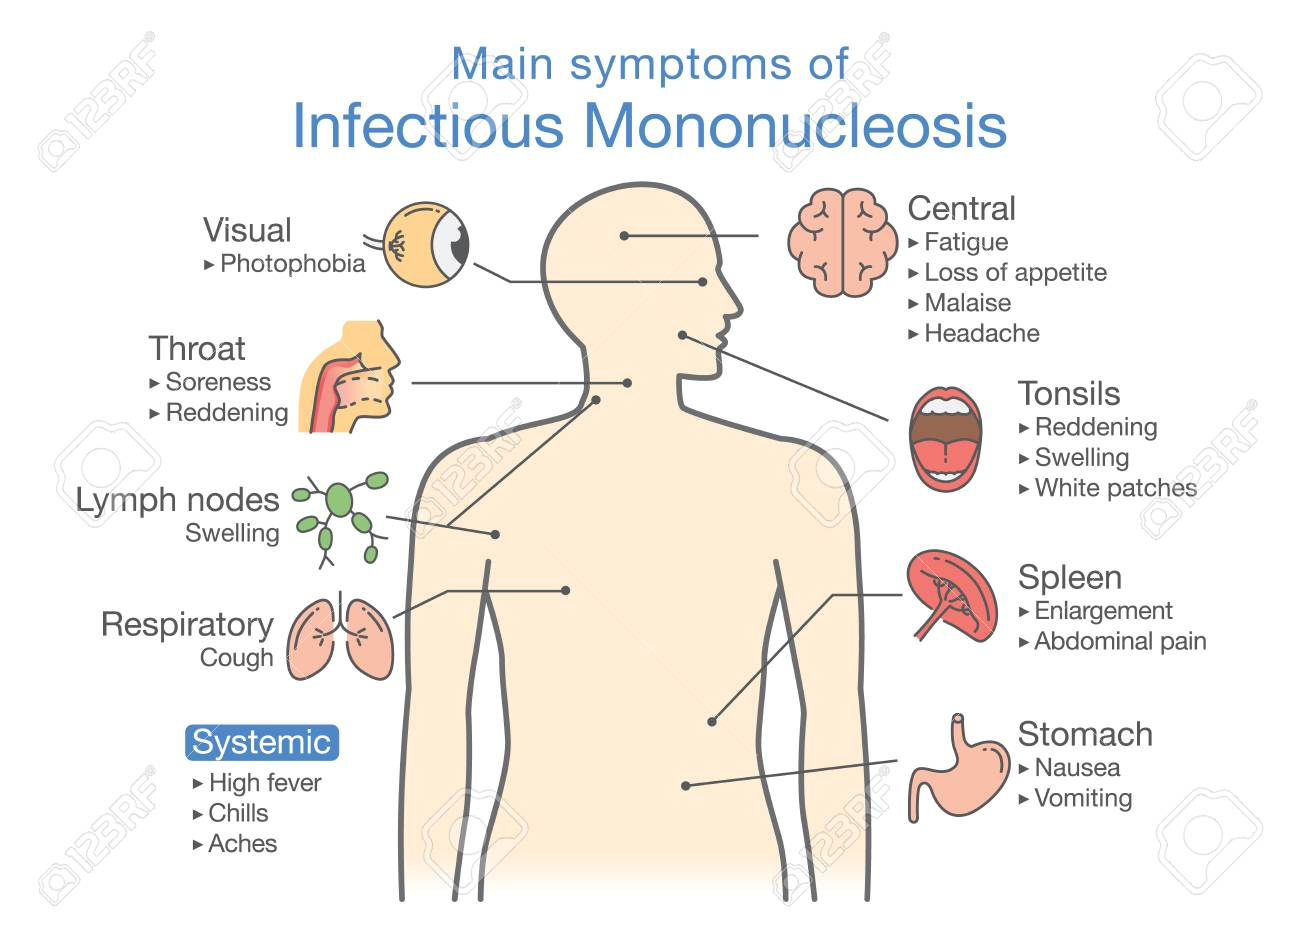 Symptoms of infectious mononucleosis disease diagram for diagnose symptoms of infectious mononucleosis disease diagram for diagnose patient of doctor stock vector pooptronica Image collections